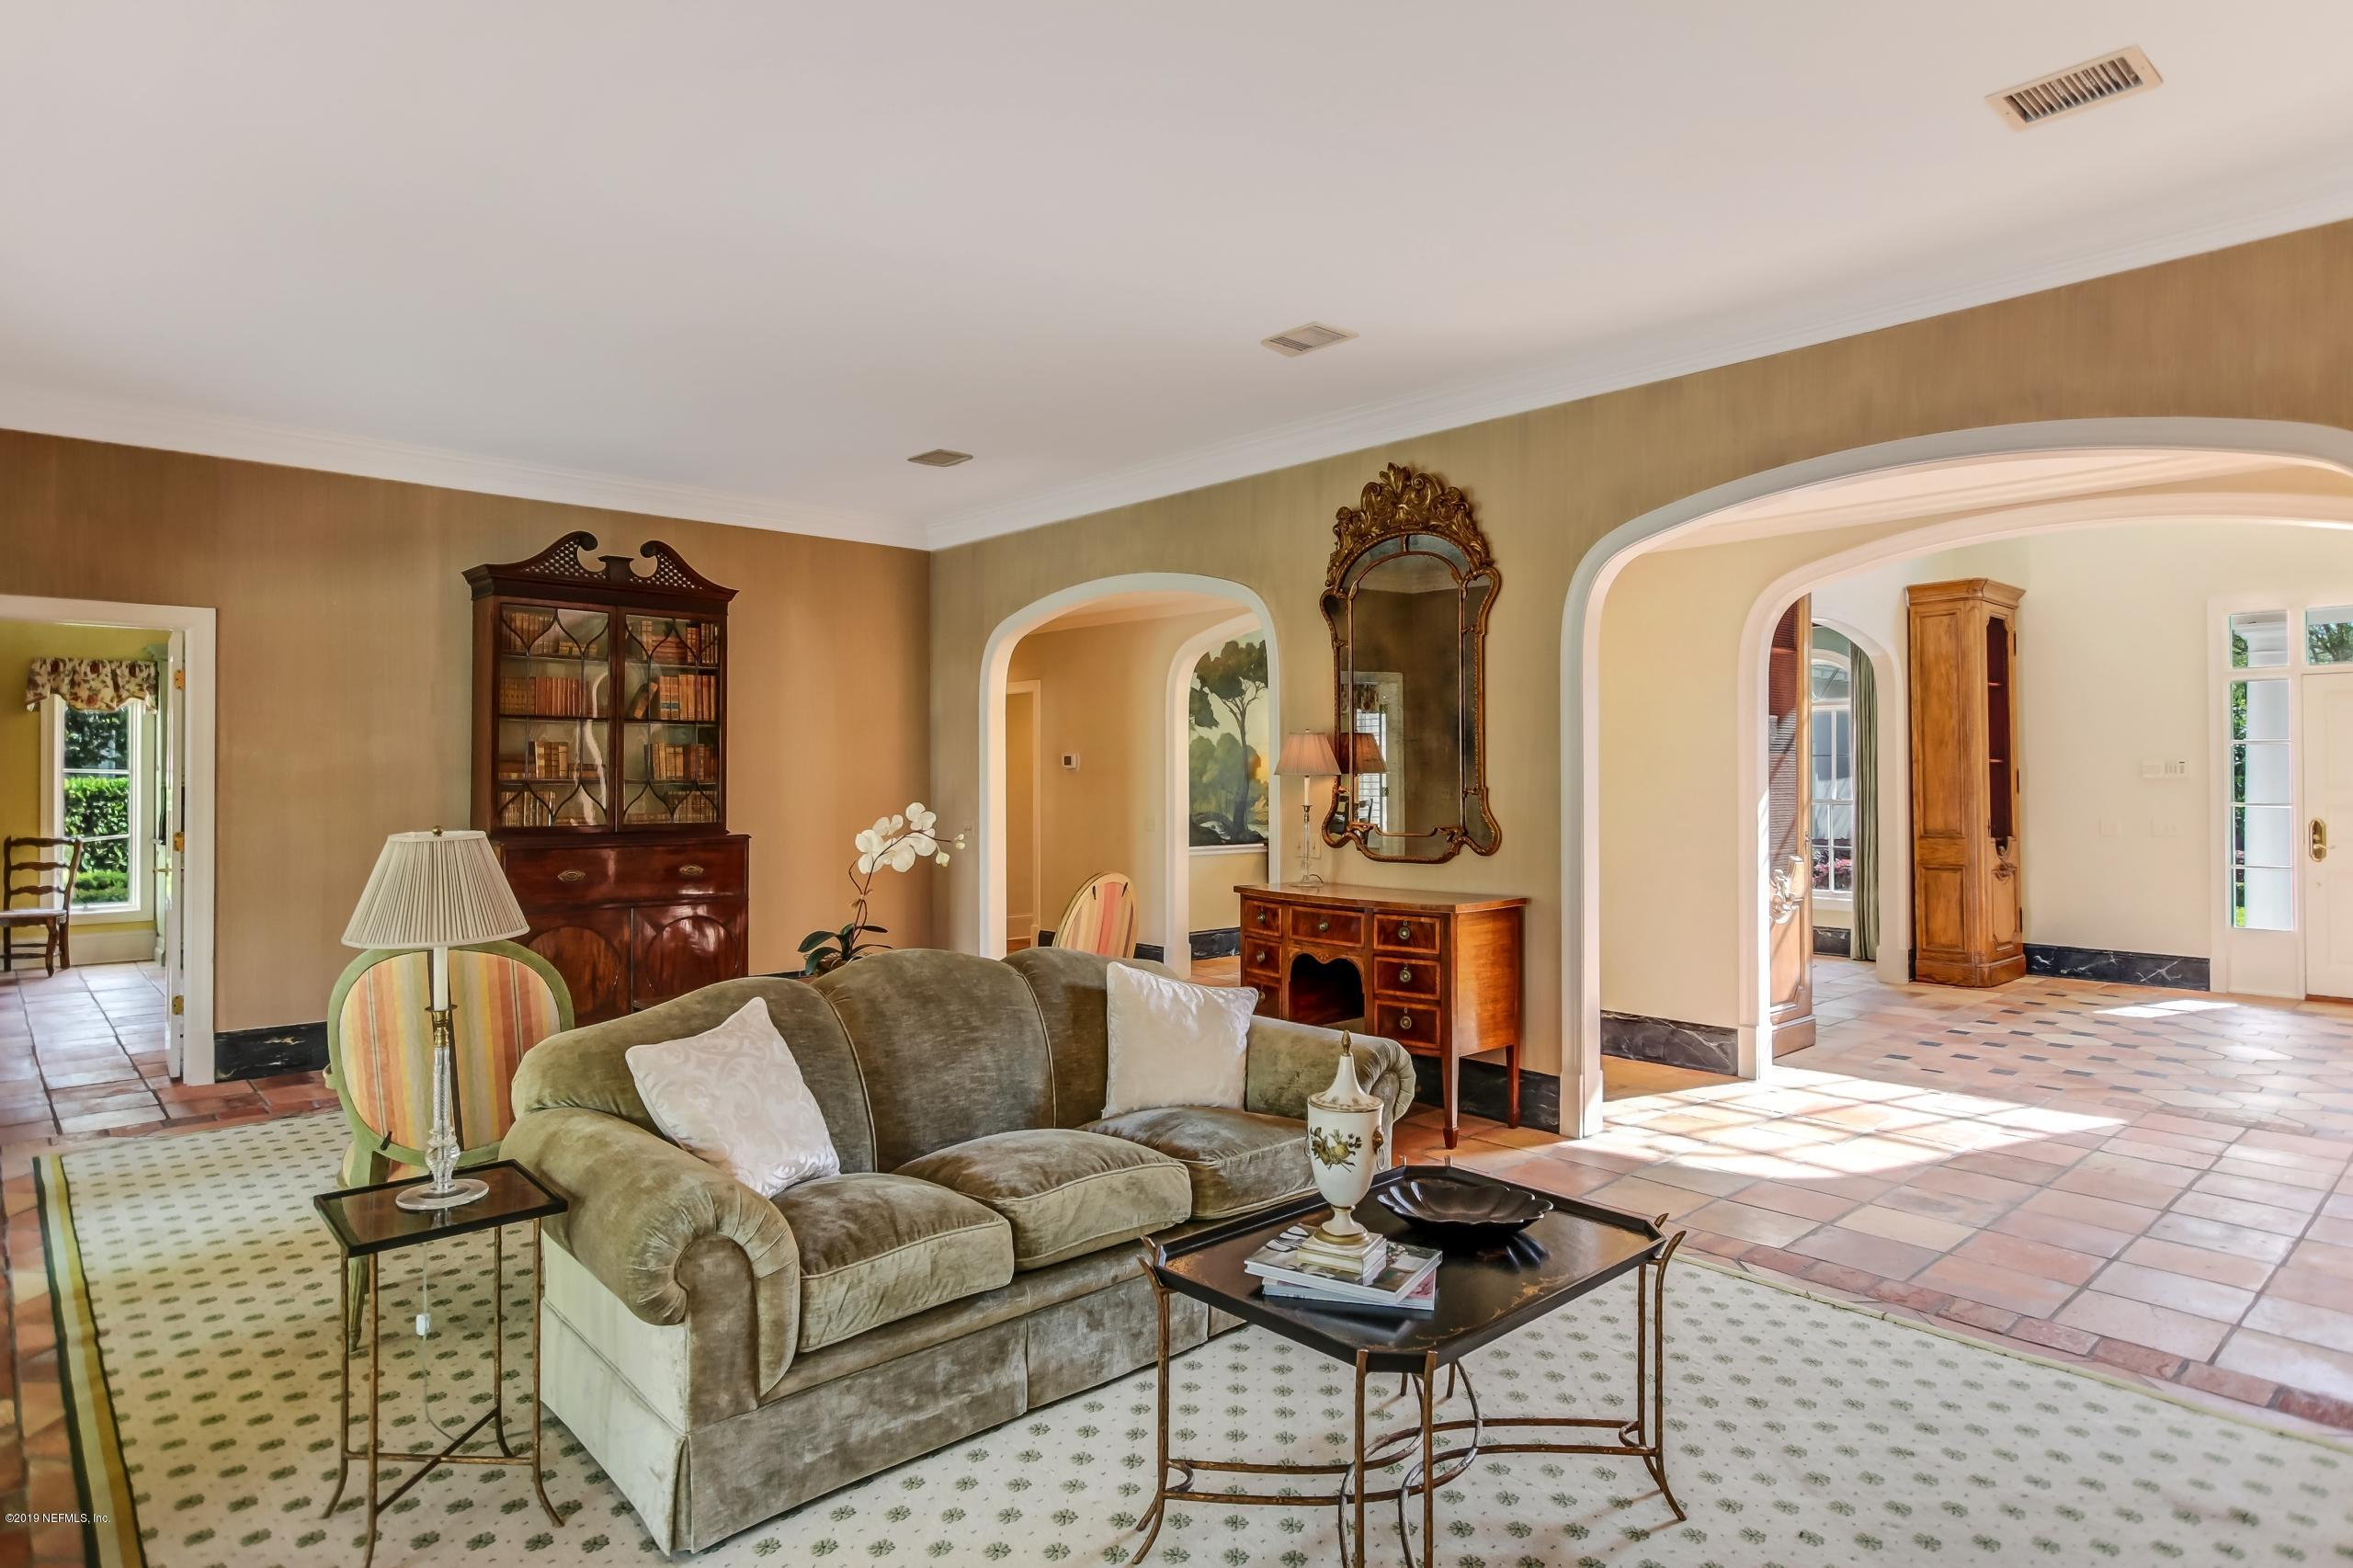 205 SETTLERS ROW, PONTE VEDRA BEACH, FLORIDA 32082, 5 Bedrooms Bedrooms, ,7 BathroomsBathrooms,Residential - single family,For sale,SETTLERS ROW,986795